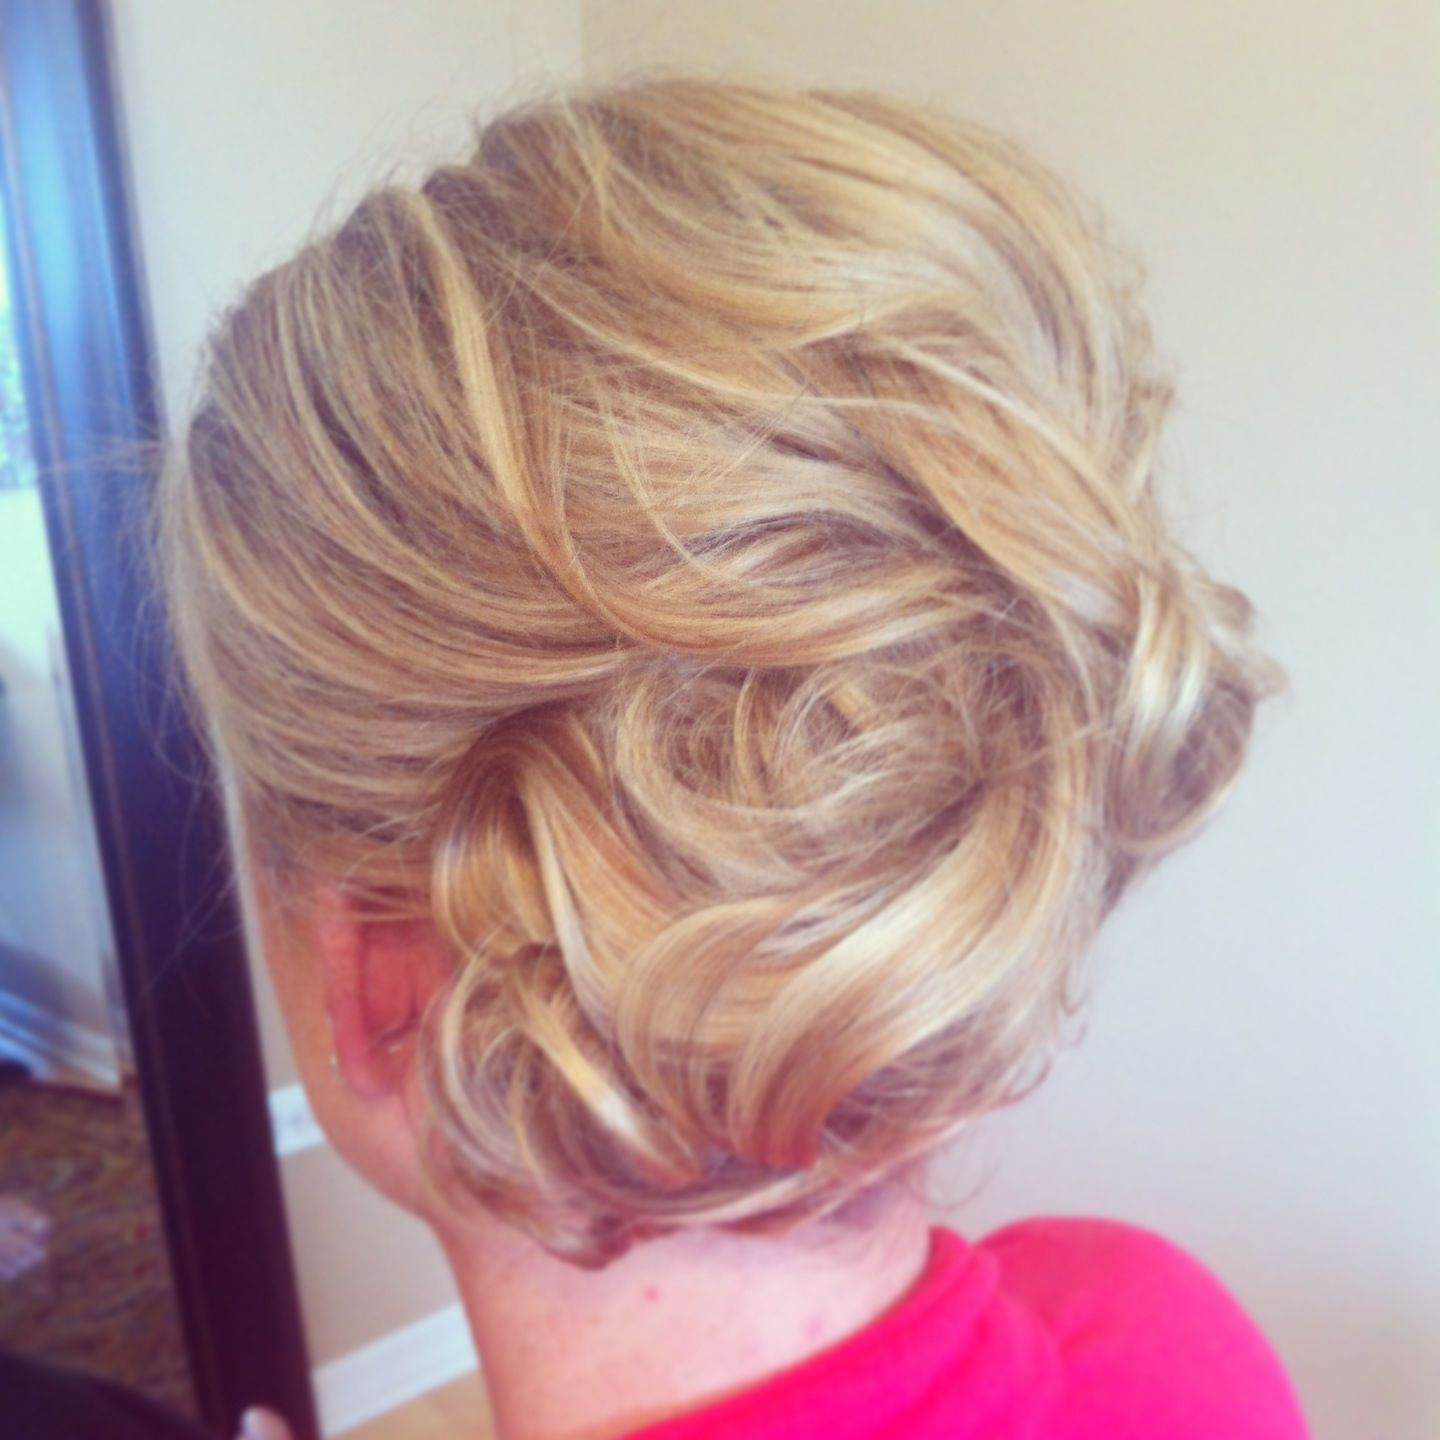 Favorite Curls Clipped To The Side Bridal Hairstyles Within Low Side Bun With Loose Curls Pinned Up. Bridal Hair Styles (View 3 of 20)